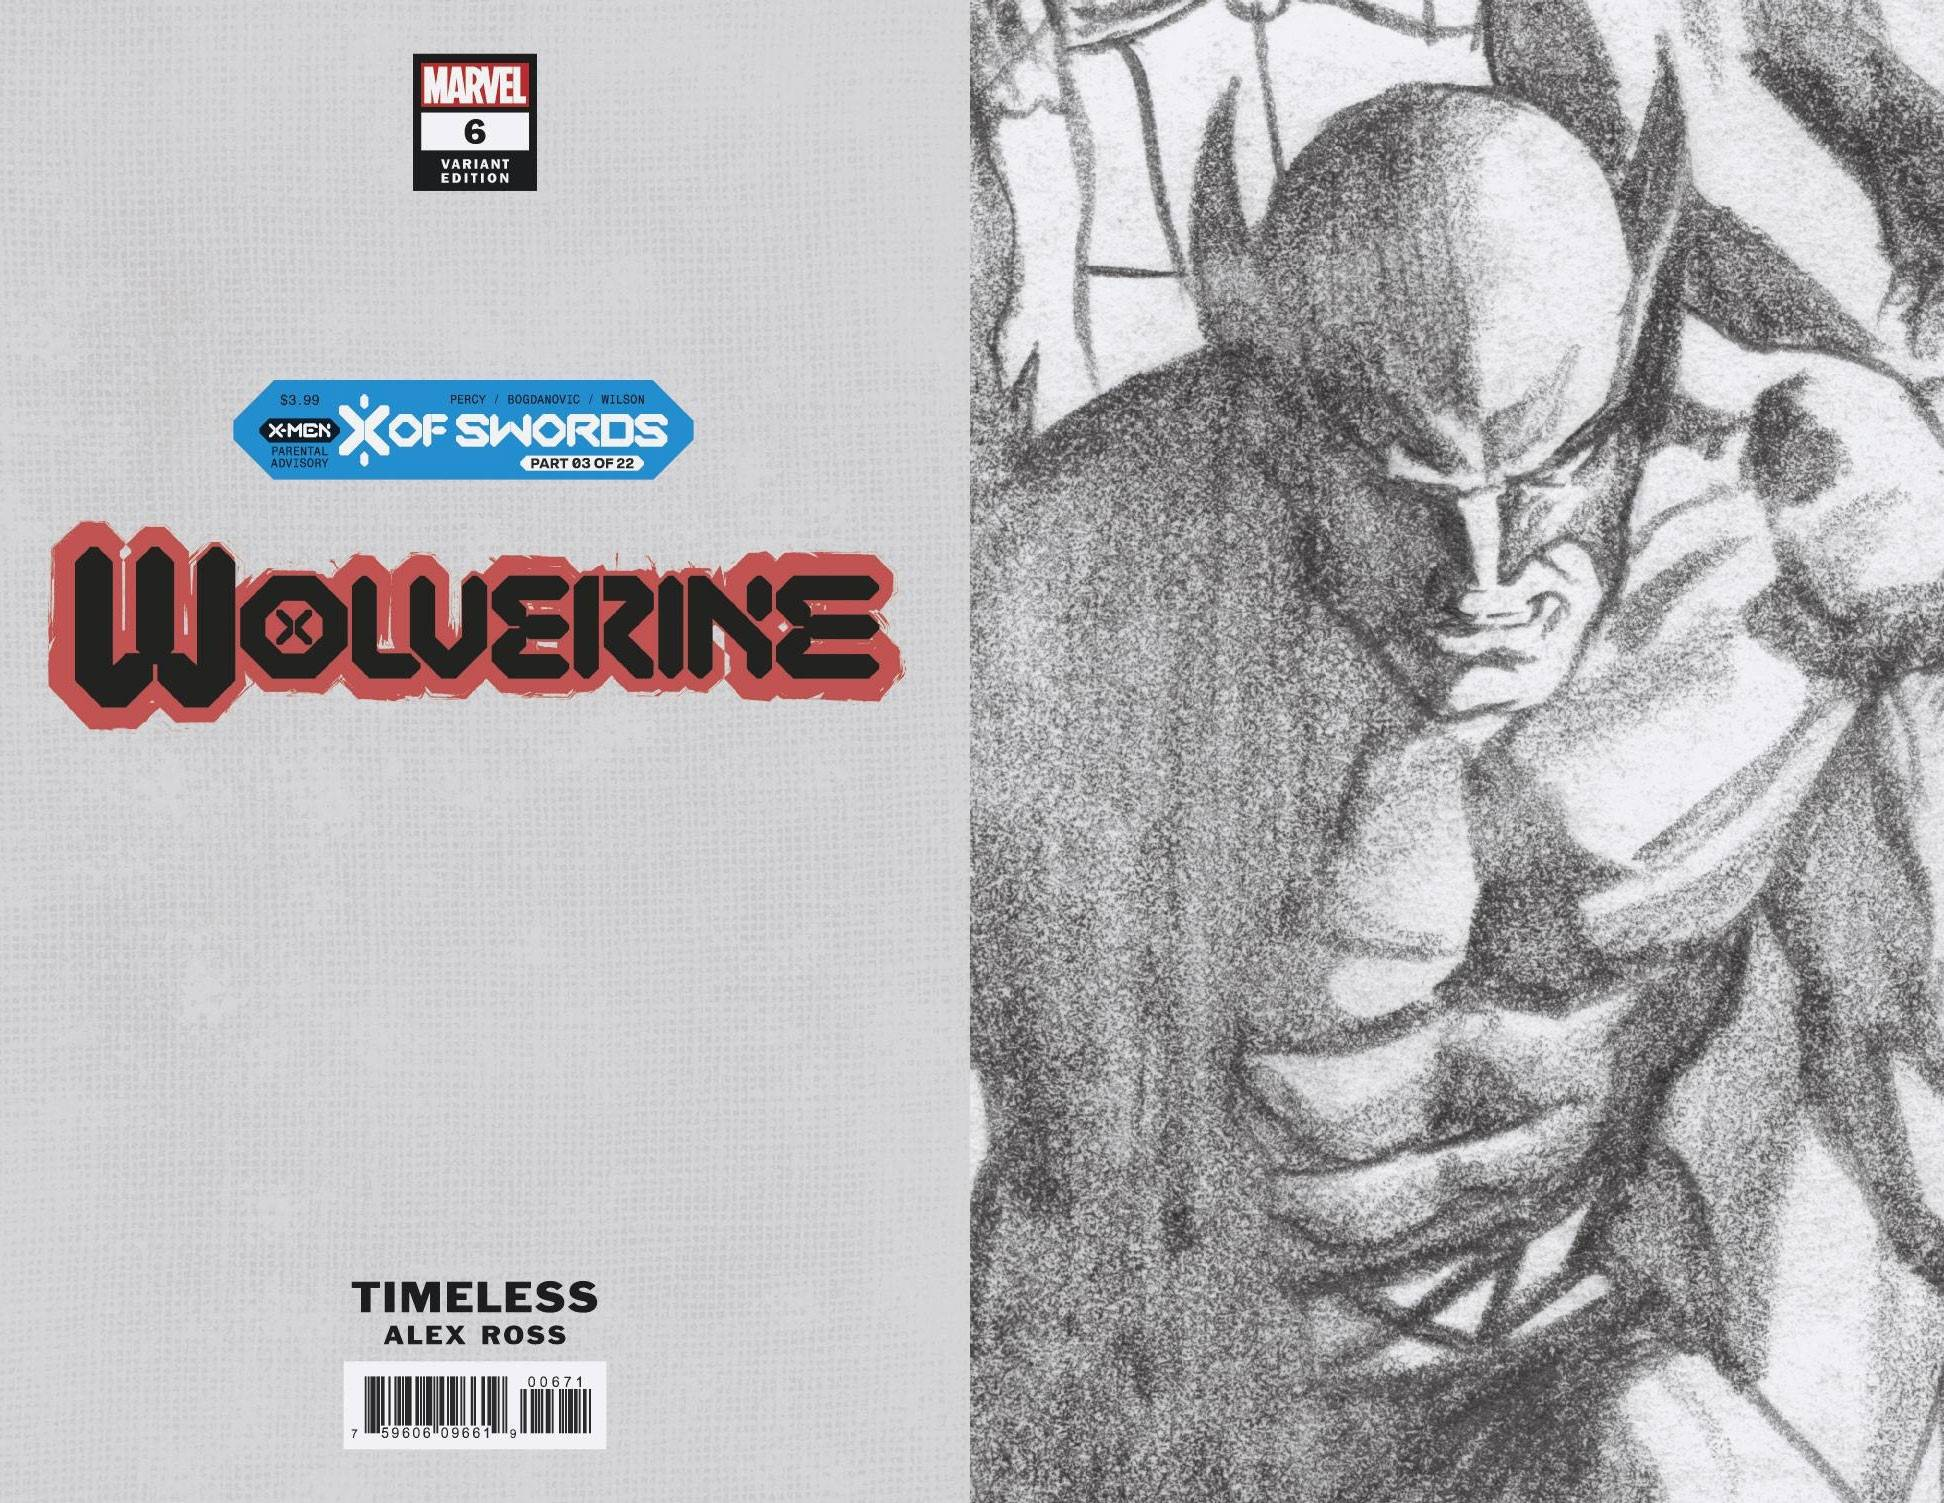 WOLVERINE #6 ALEX ROSS WOLVERINE TIMELESS VIRGIN SKETCH VAR